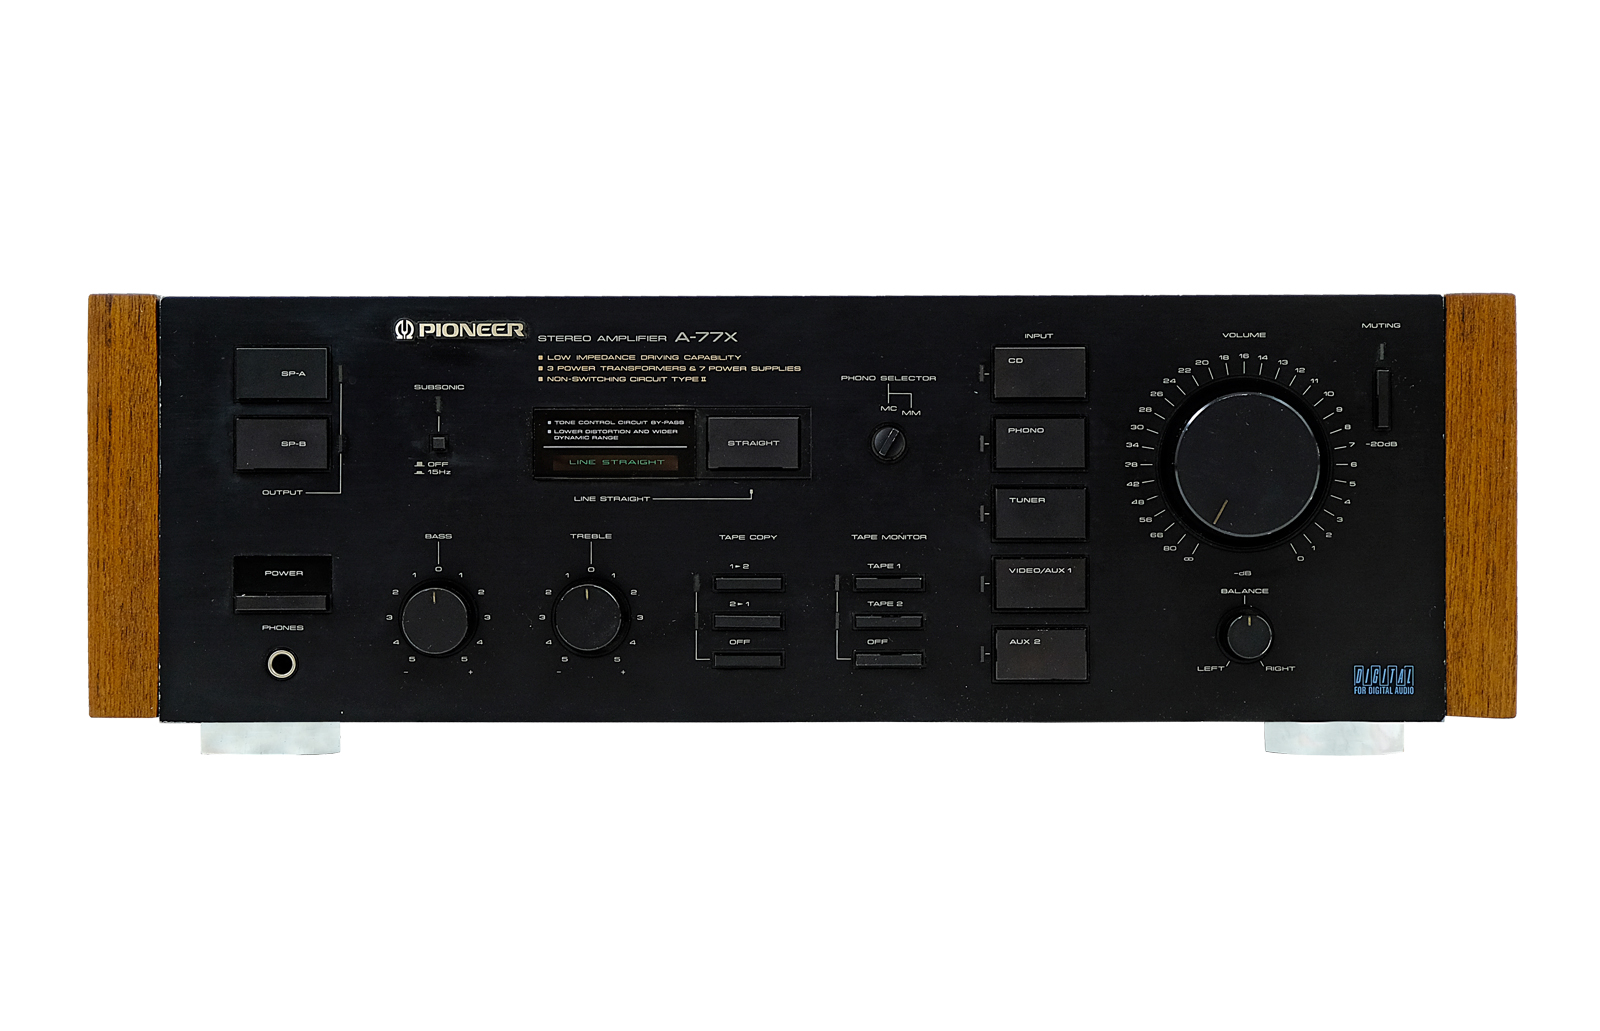 Pioneer A 77X